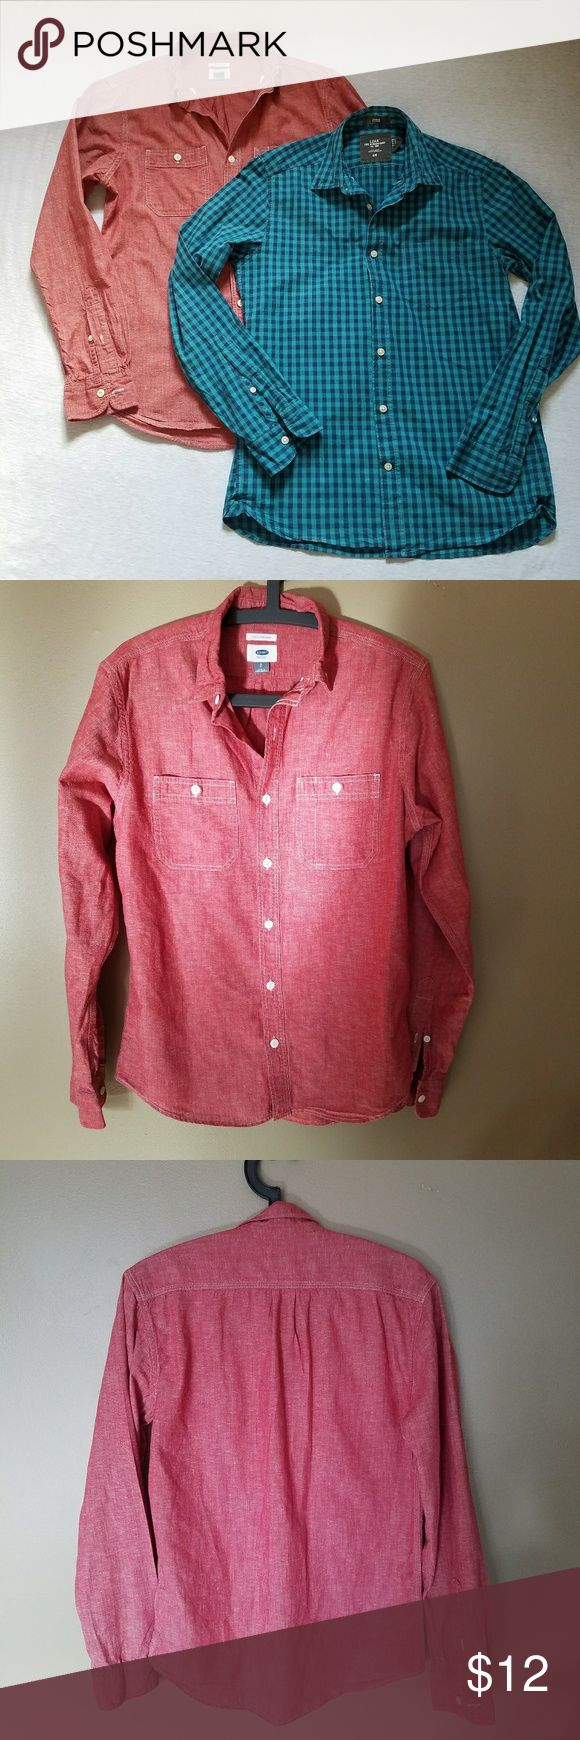 Bundel H&M Old Navy button down shirts red blue S Old Navy slim fit red chambray shirt in excellent used condition, no flaws, 78% cotton,  22% linen, length ca 27 inches, chest armpit to armpit ca 21 inches;  H&M L.O.G.G. navy blue and turquoise fitted plaid shirt in gently used condition,  signs of light wash and wear,  no other flaws, 100% cotton,  length ca 27 inches, chest armpit to armpit ca 19.5 inches. H&M Shirts Casual Button Down Shirts